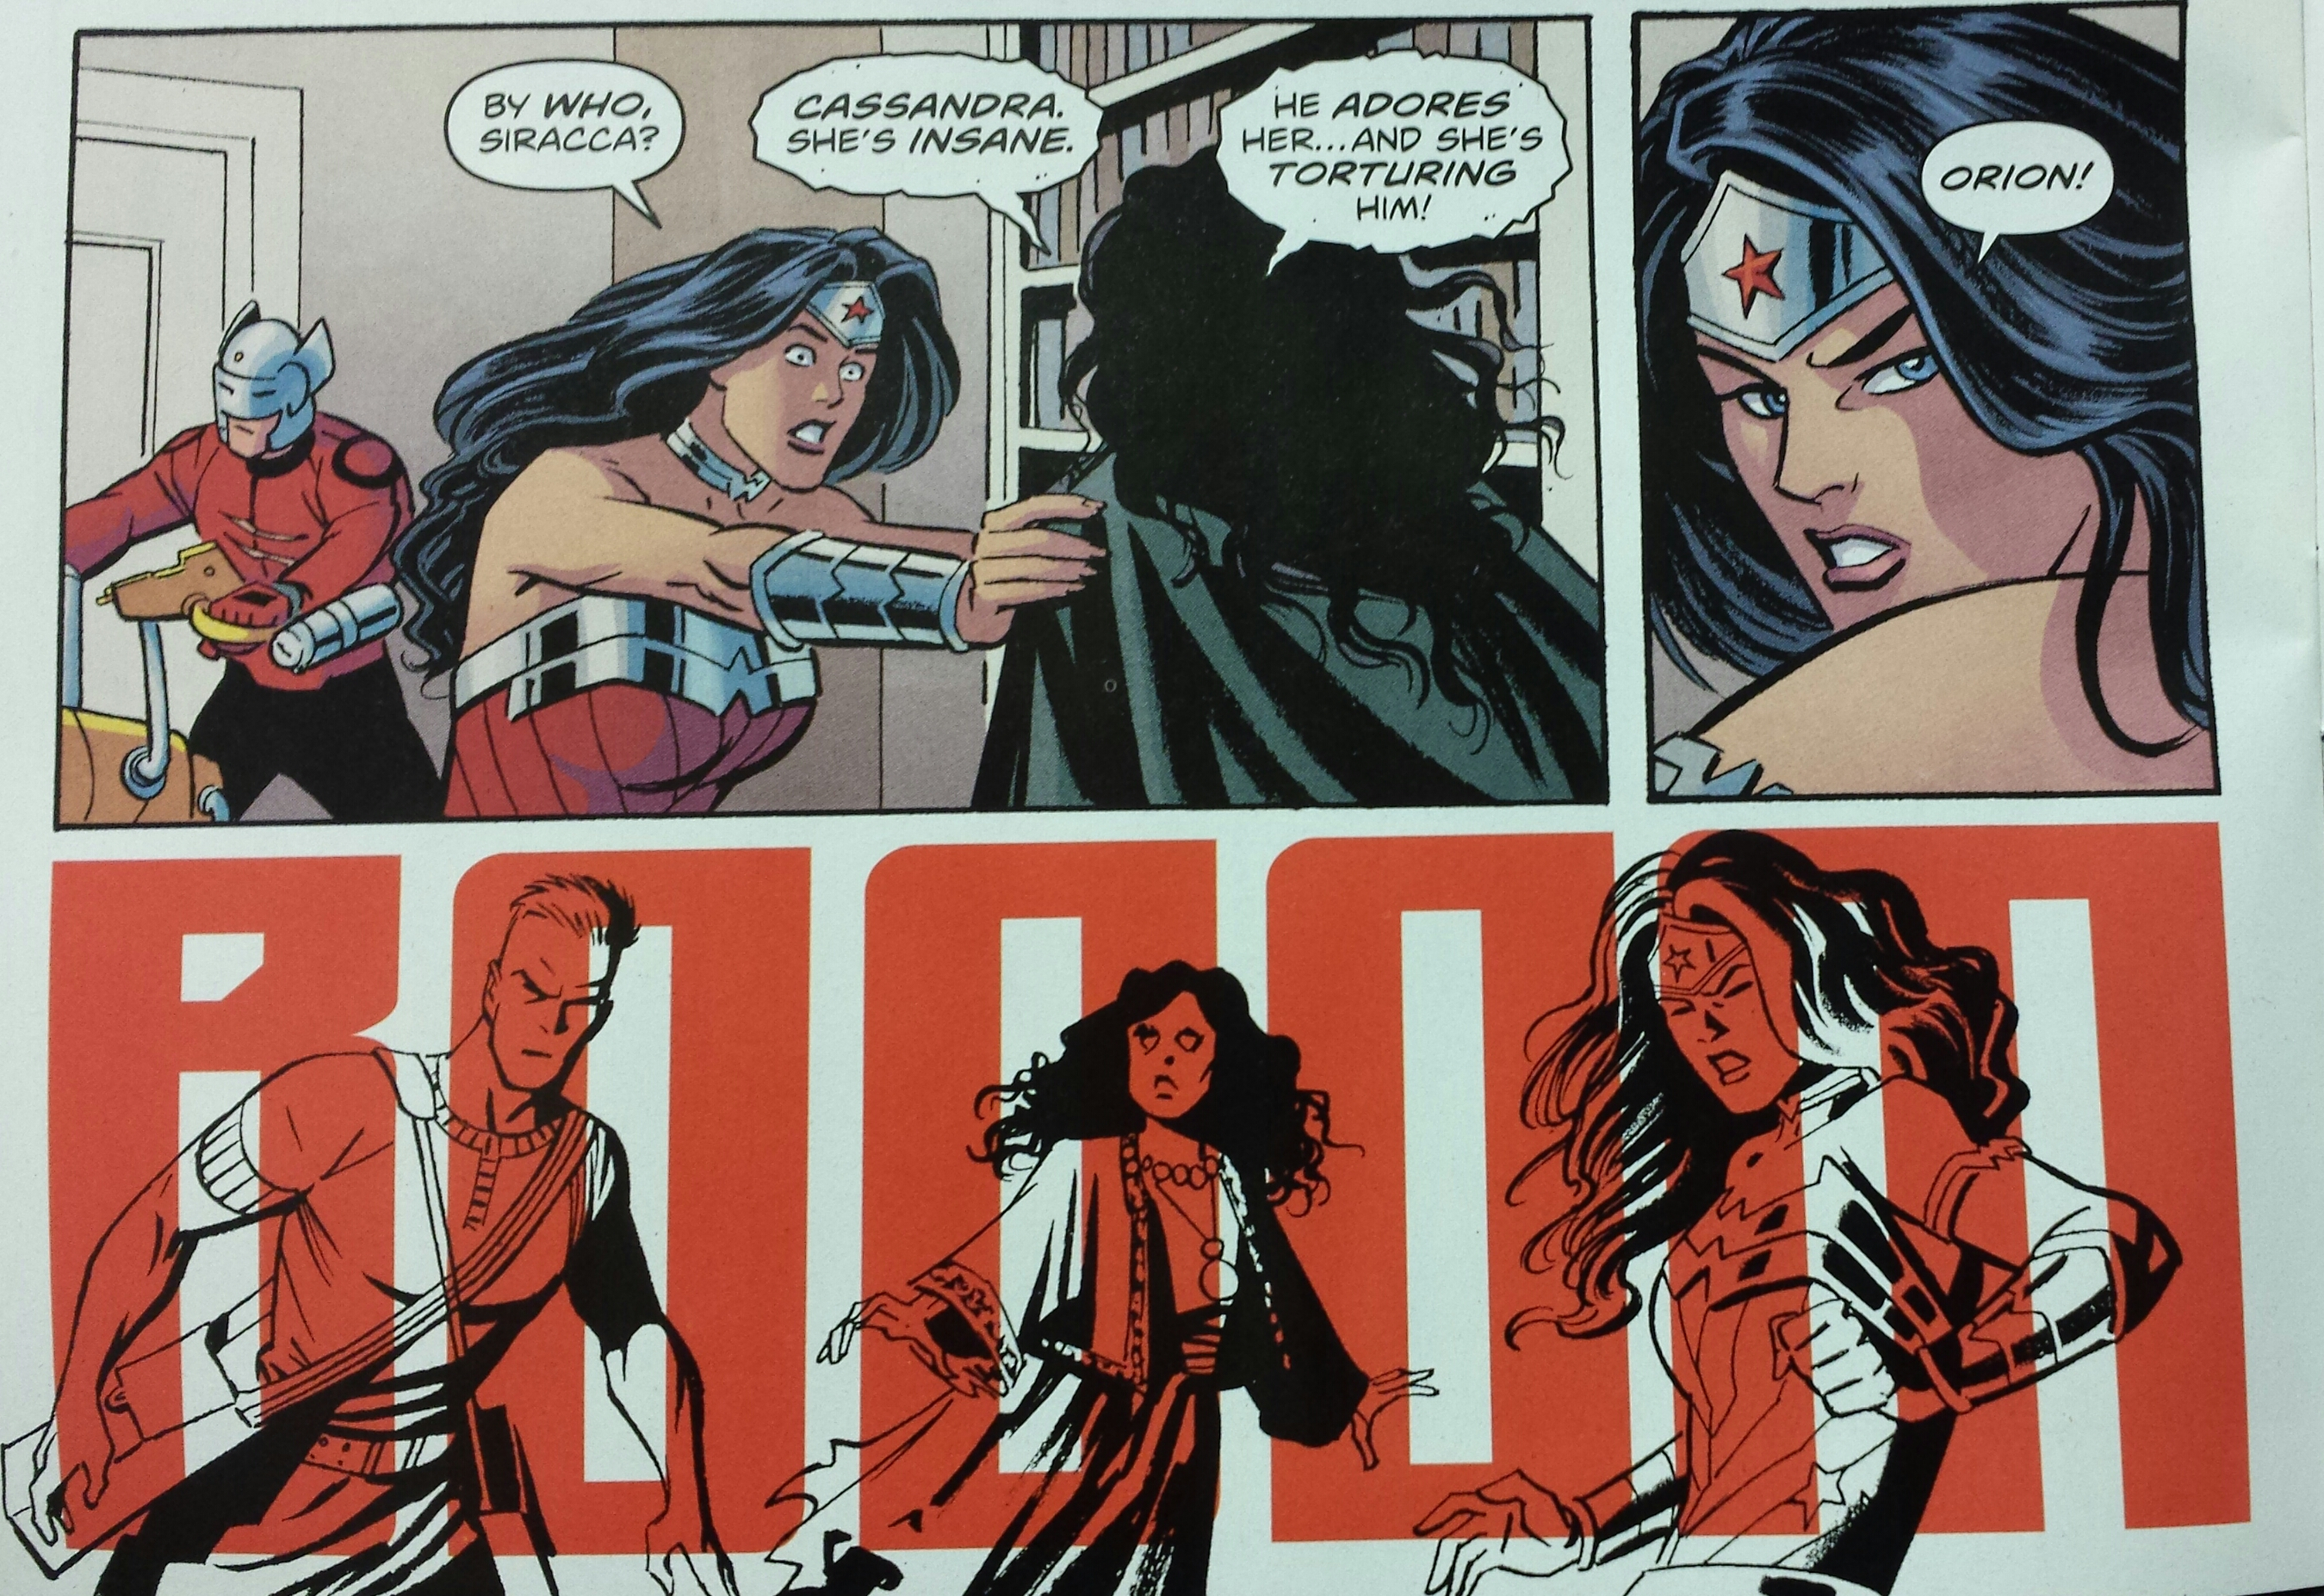 UNvincible Wonder Woman Brian Azzarello Cliff Chiang DC Comics New 52 Invincible Mark Grayson Diana Prince